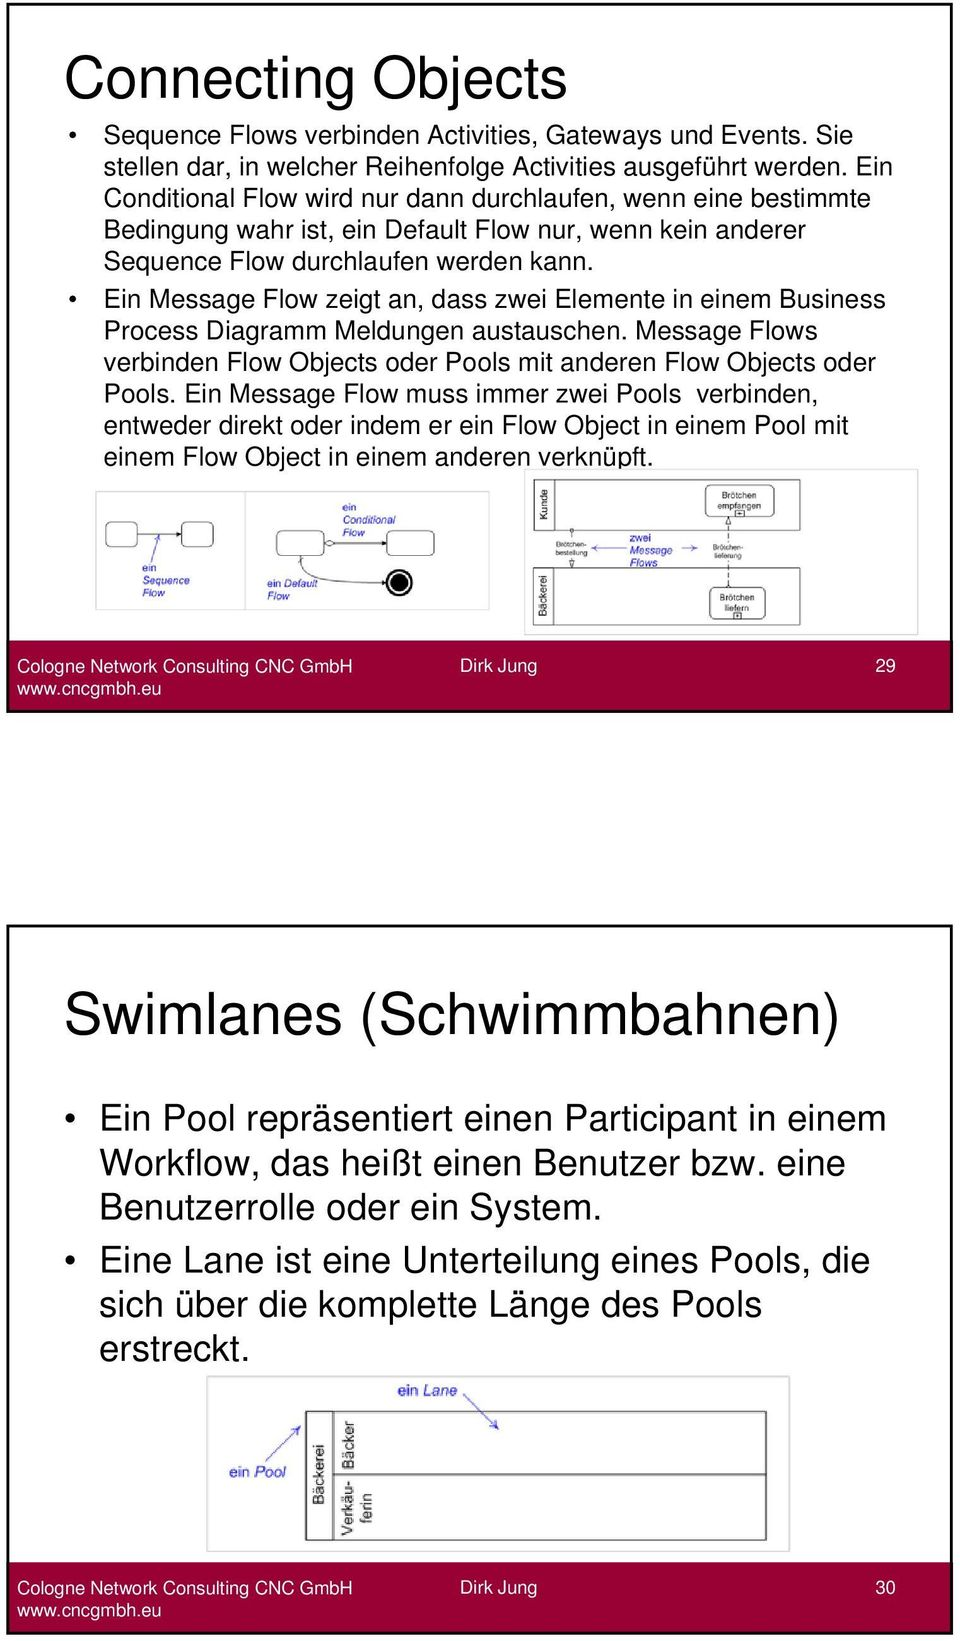 Ein Message Flow zeigt an, dass zwei Elemente in einem Business Process Diagramm Meldungen austauschen. Message Flows verbinden Flow Objects oder Pools mit anderen Flow Objects oder Pools.